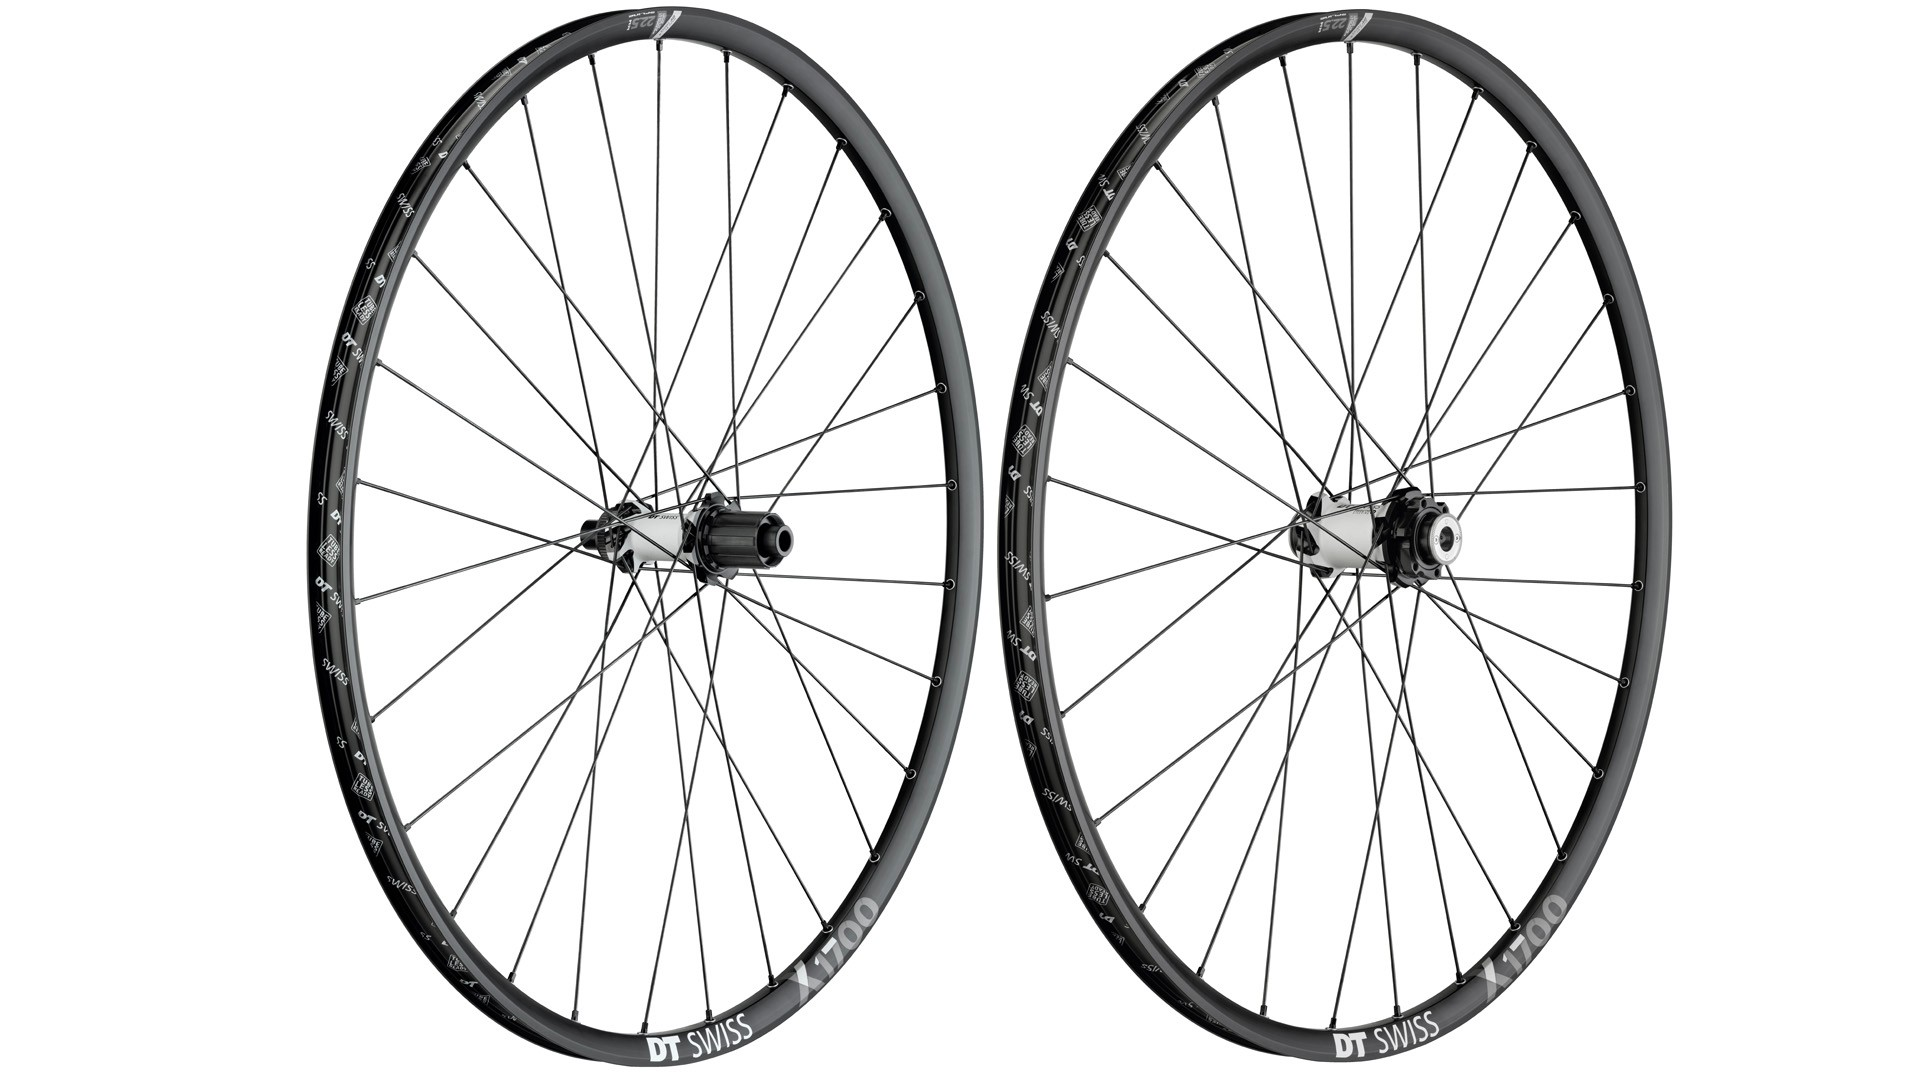 X 1700 cross-country wheels with 25mm rims